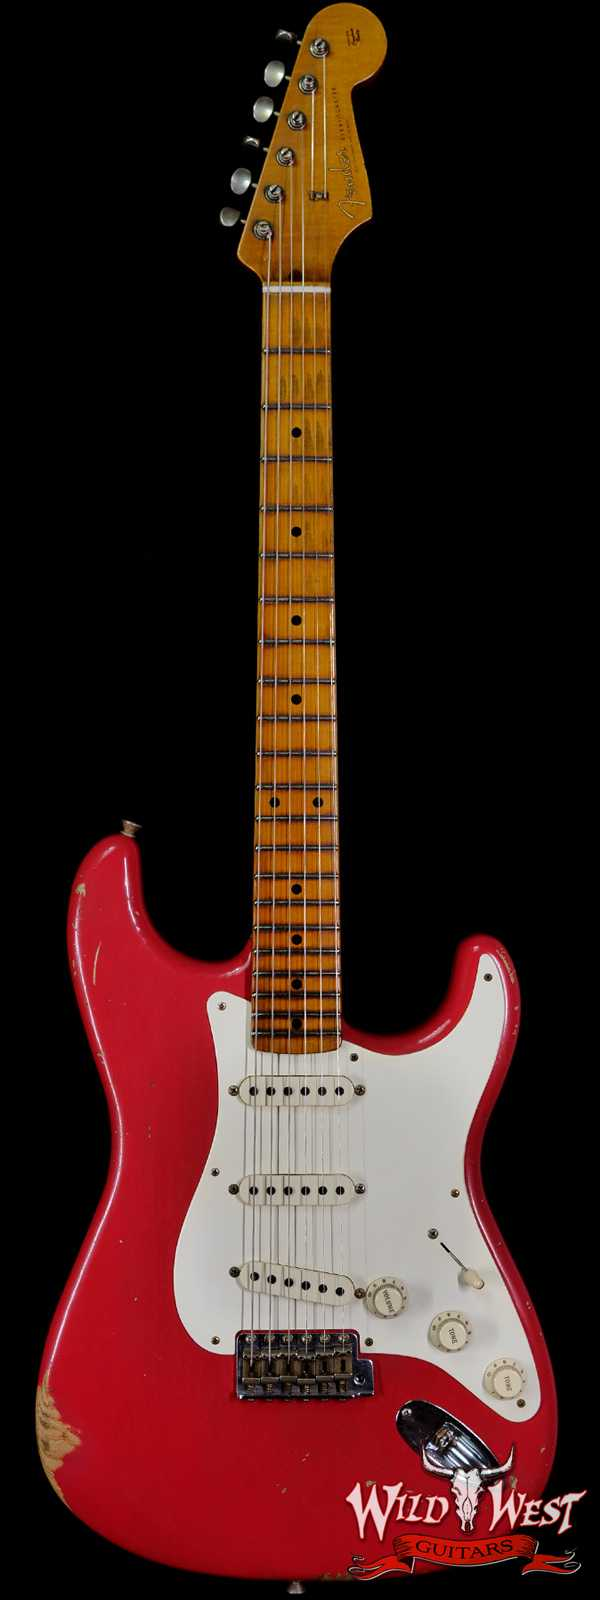 Fender Custom Shop Carlos Lopez Masterbuilt 1956 Ash Stratocaster Hand-Wound Pickups Relic Fiesta Red